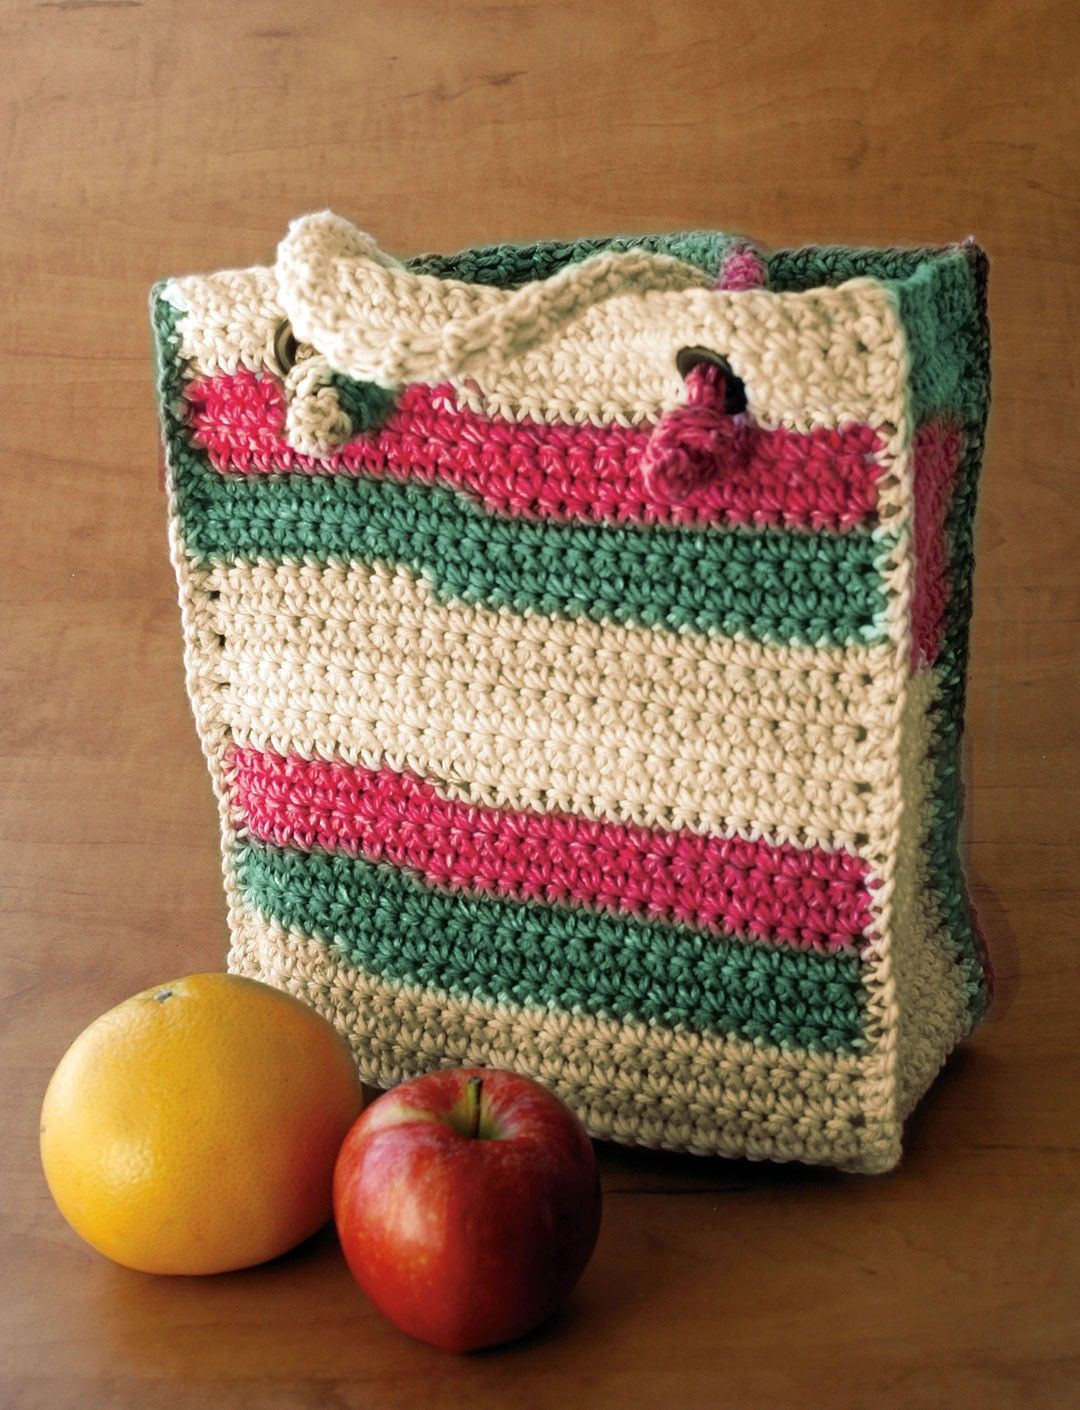 Free Crochet Pattern From Yarnspirations Lily Bag To Crochet